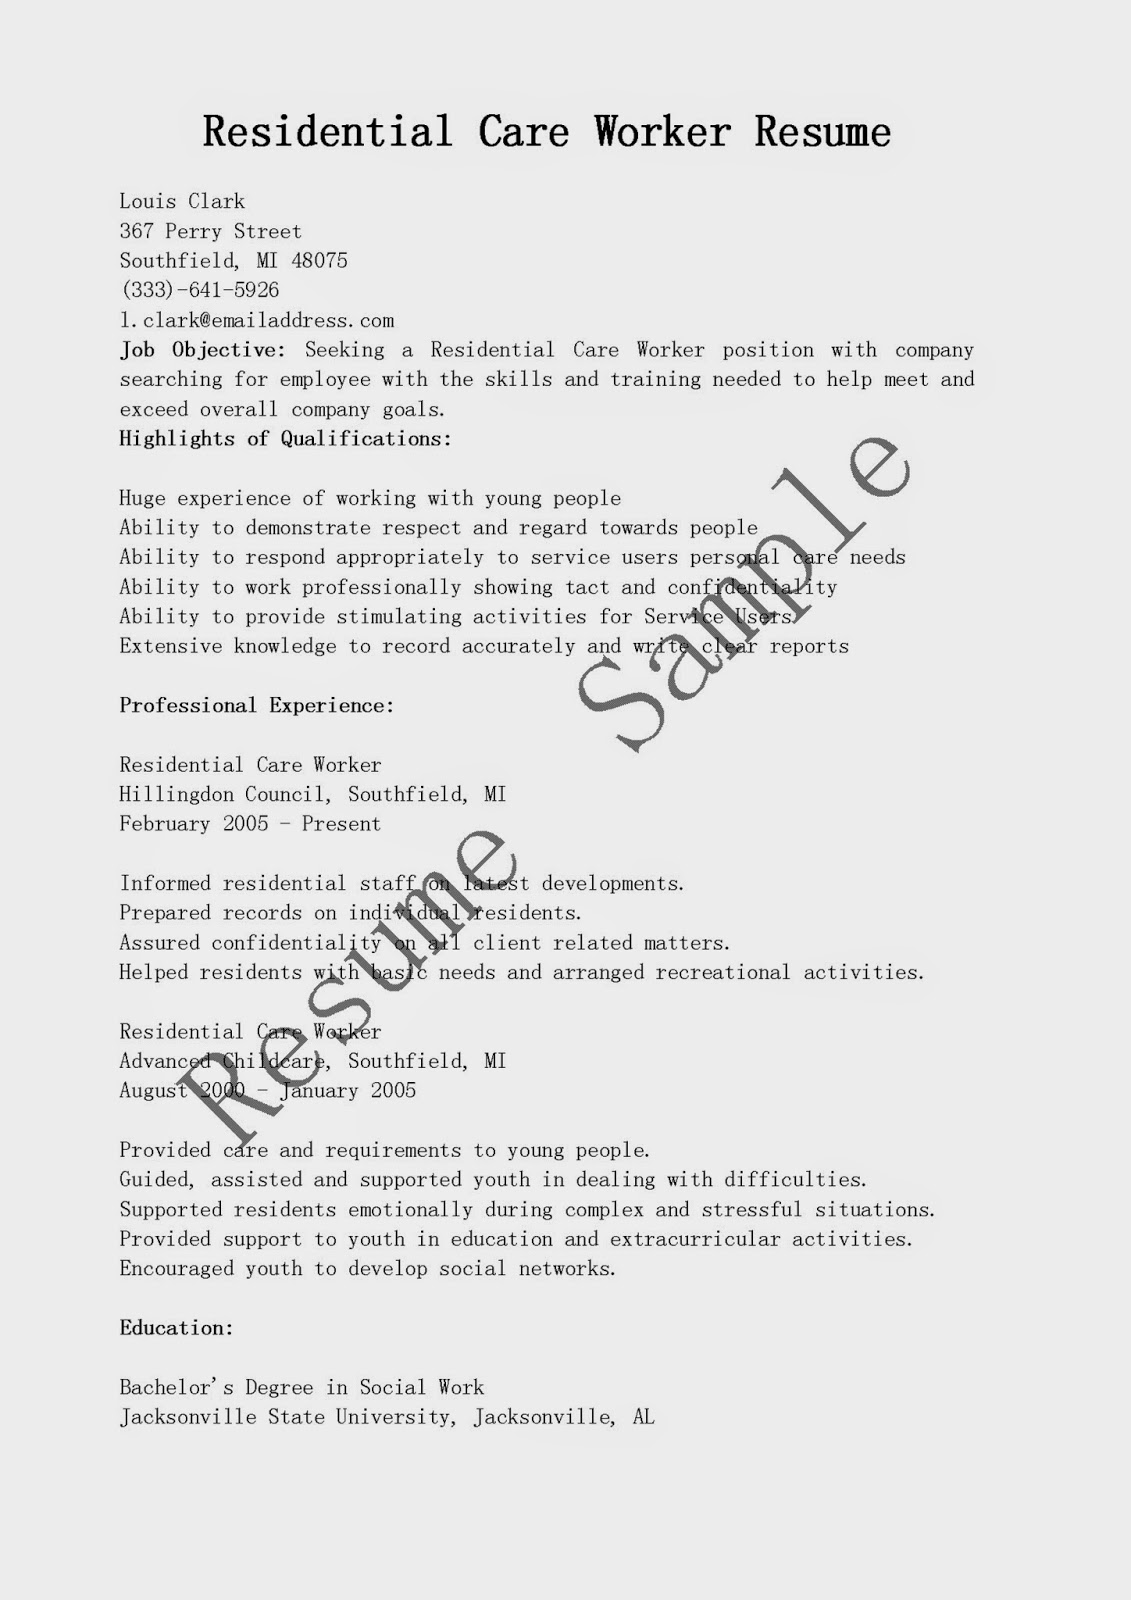 resume samples  residential care worker resume sample